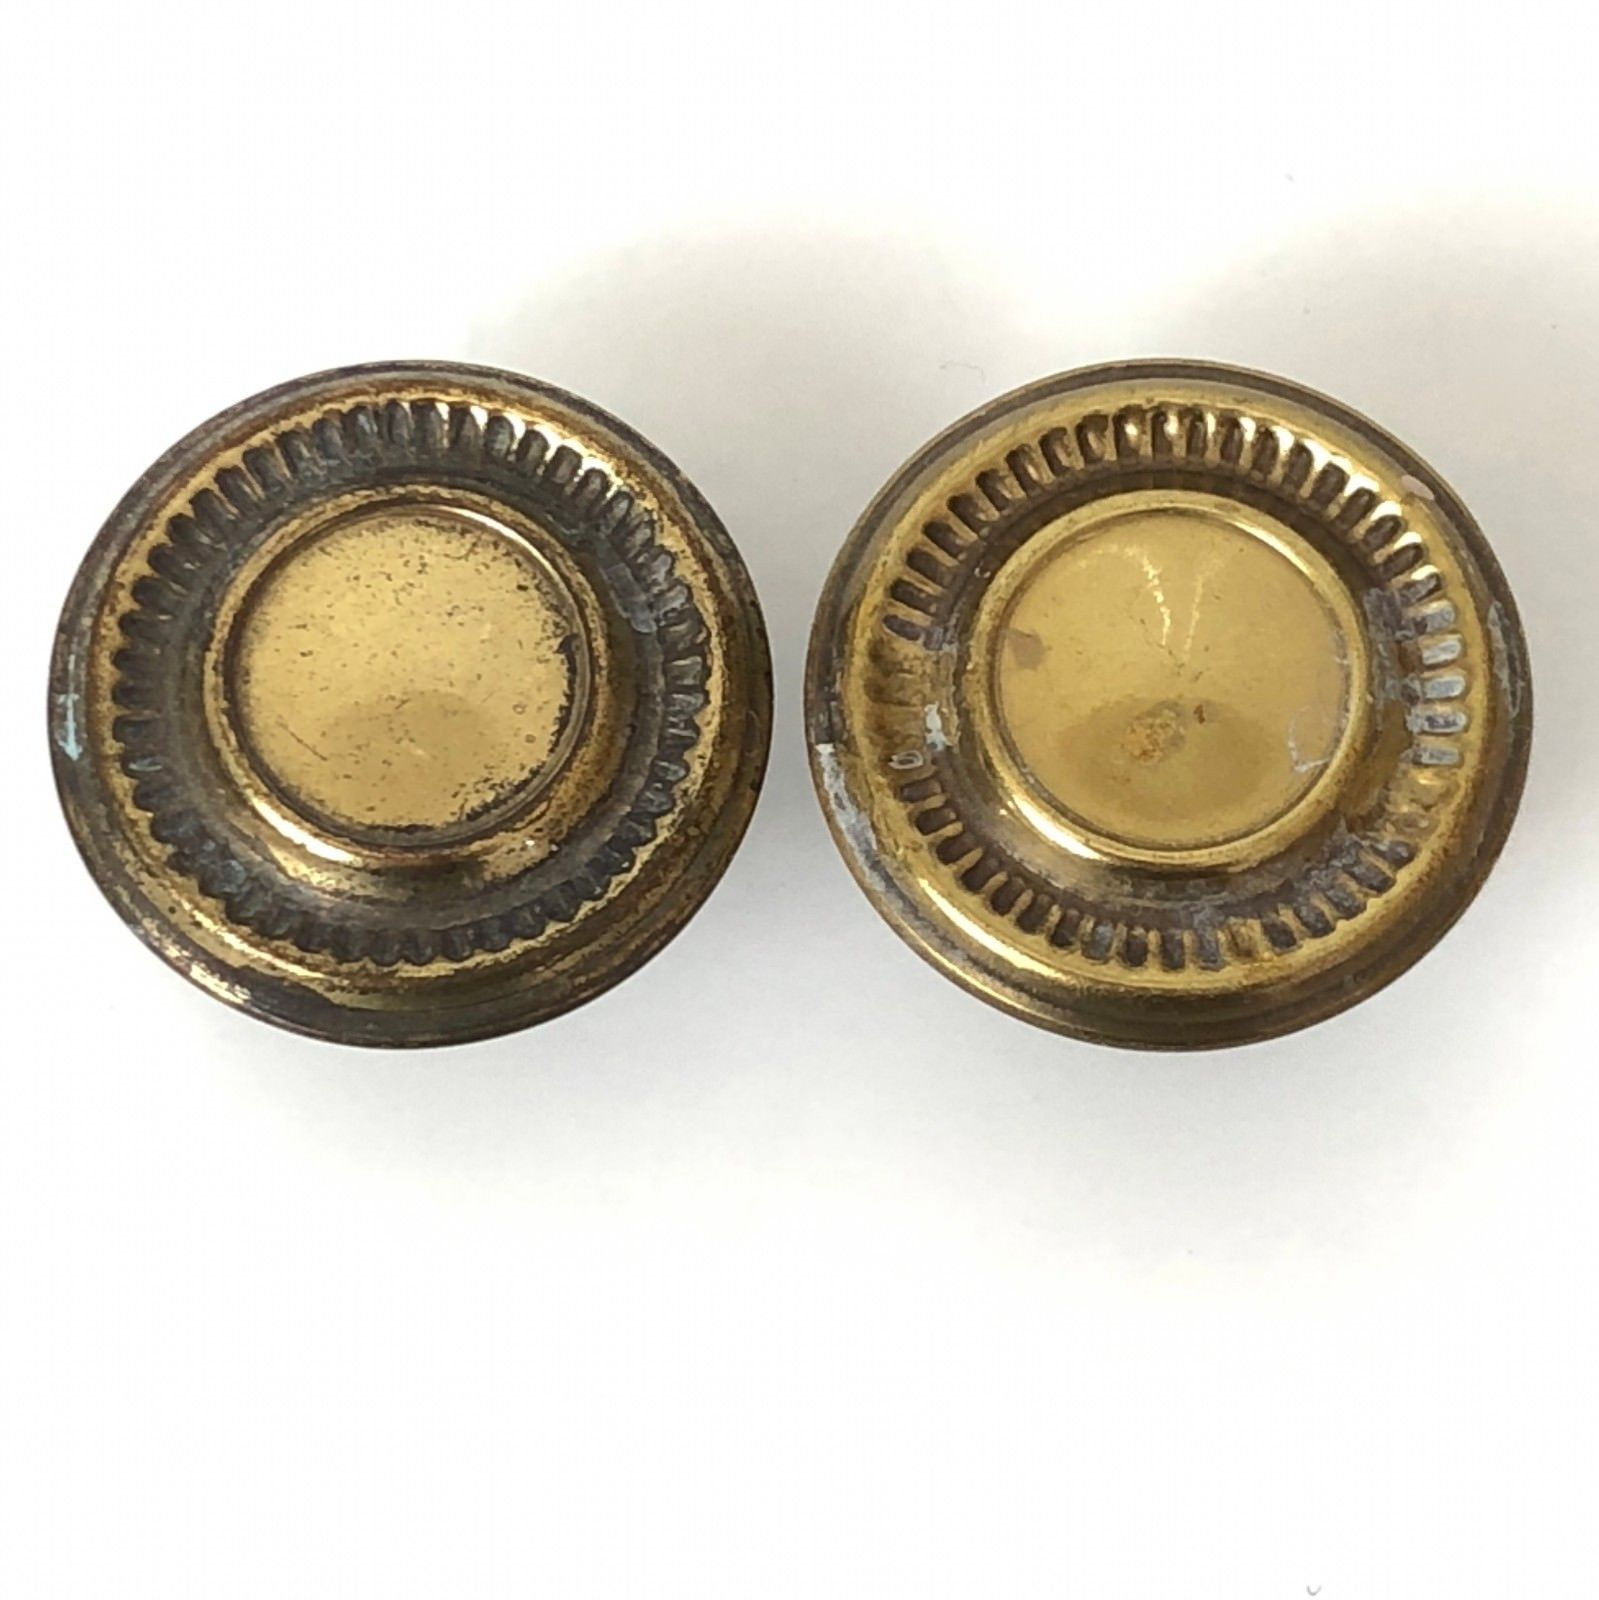 2 Vintage Brass Drawer Pulls Mushroom Knobs Handles Gold Old Patina  image 2